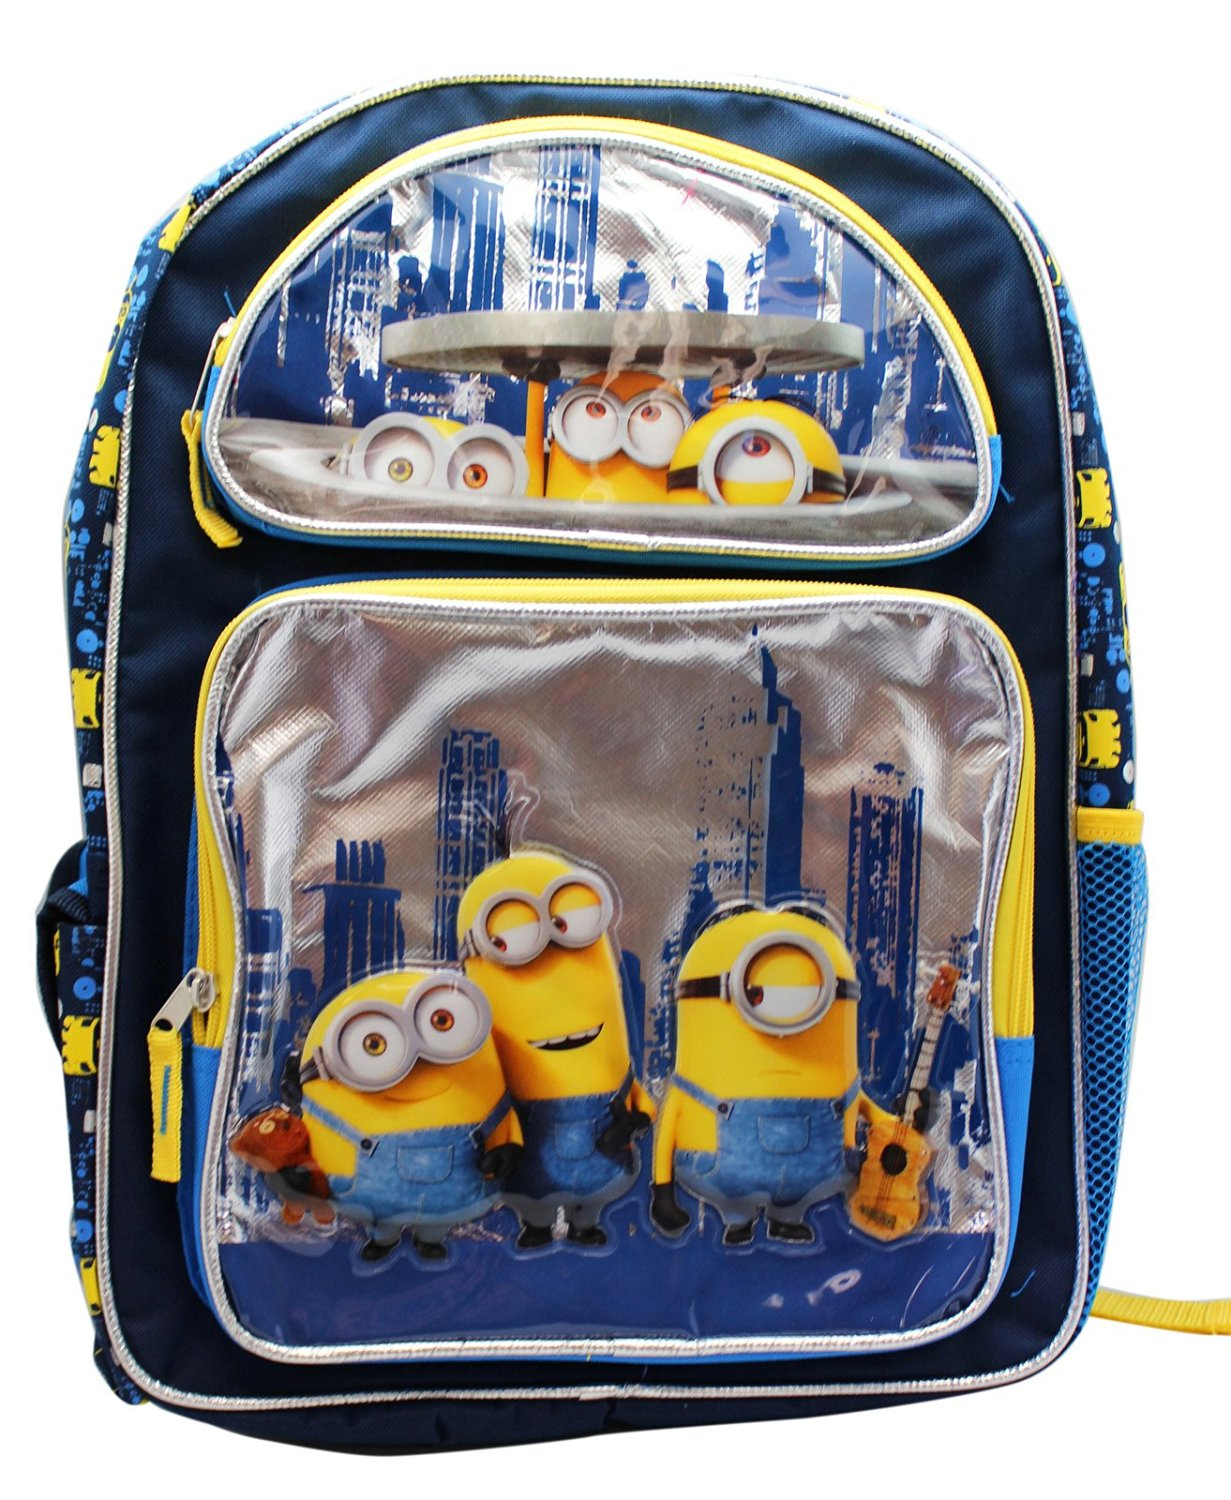 1cad2529af16 Get Quotations · New Minions New York Travels Large School Backpack-4537